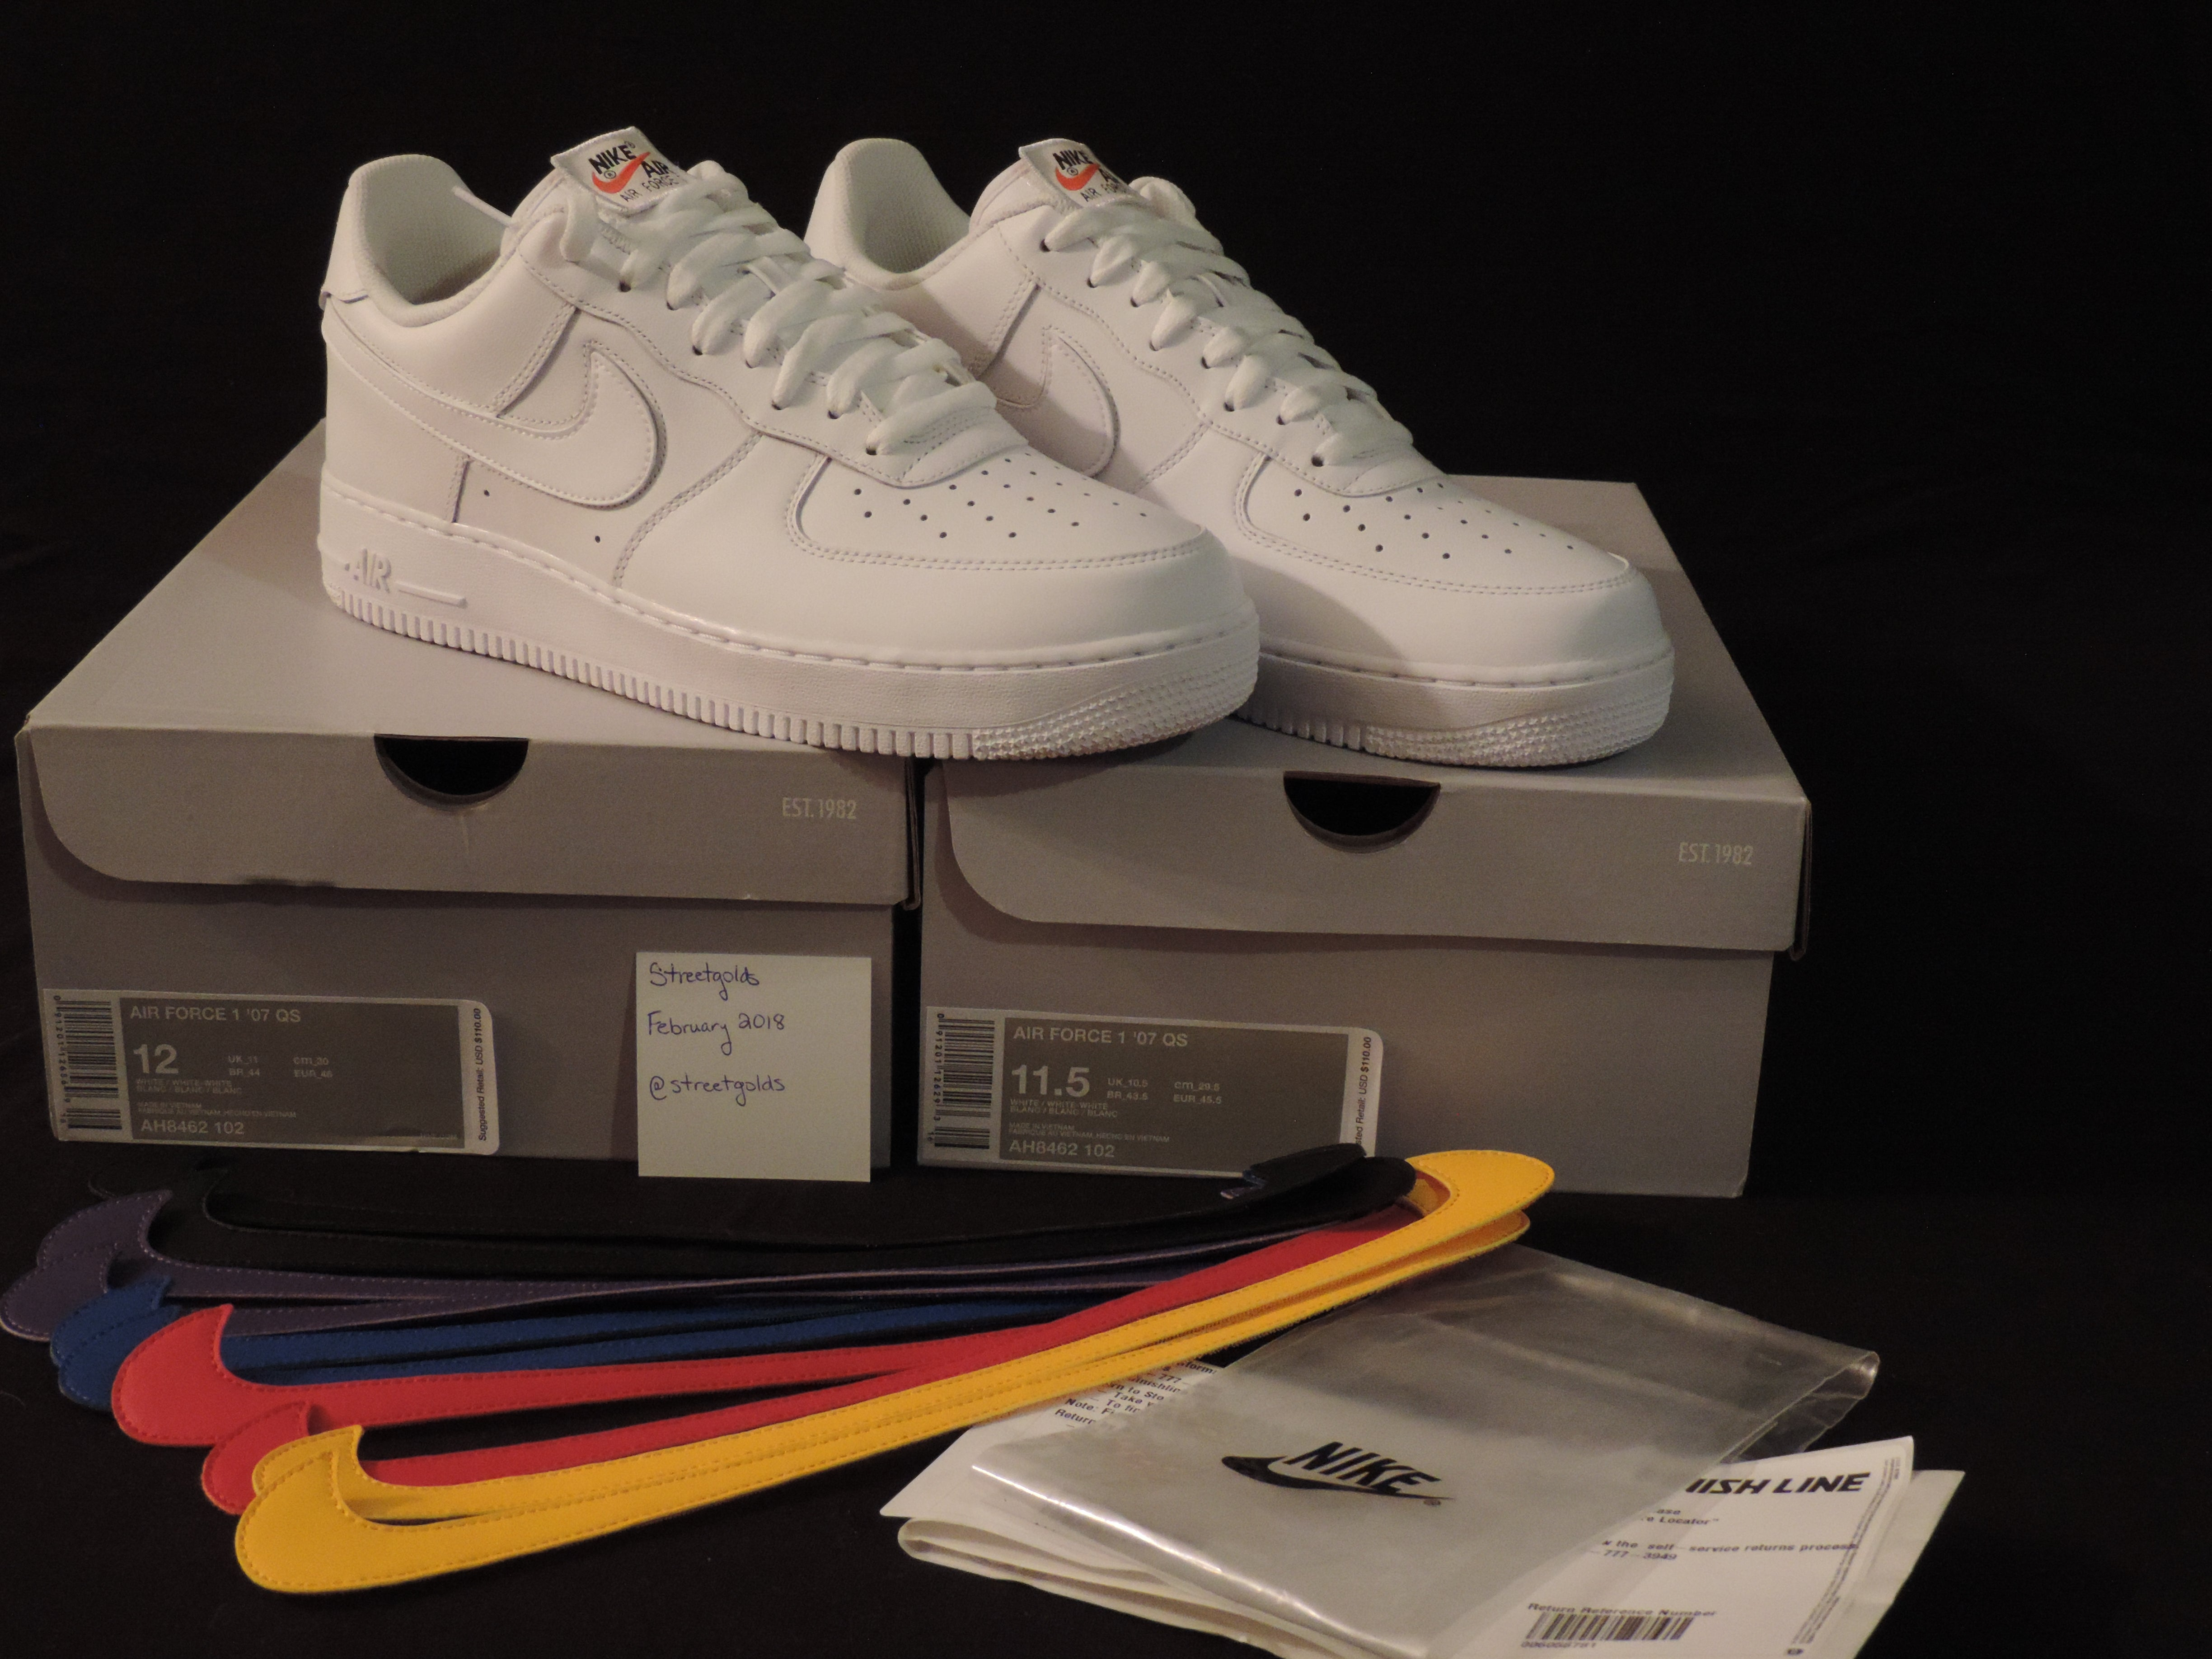 Air Force 1 Low Swoosh Pack All-Star